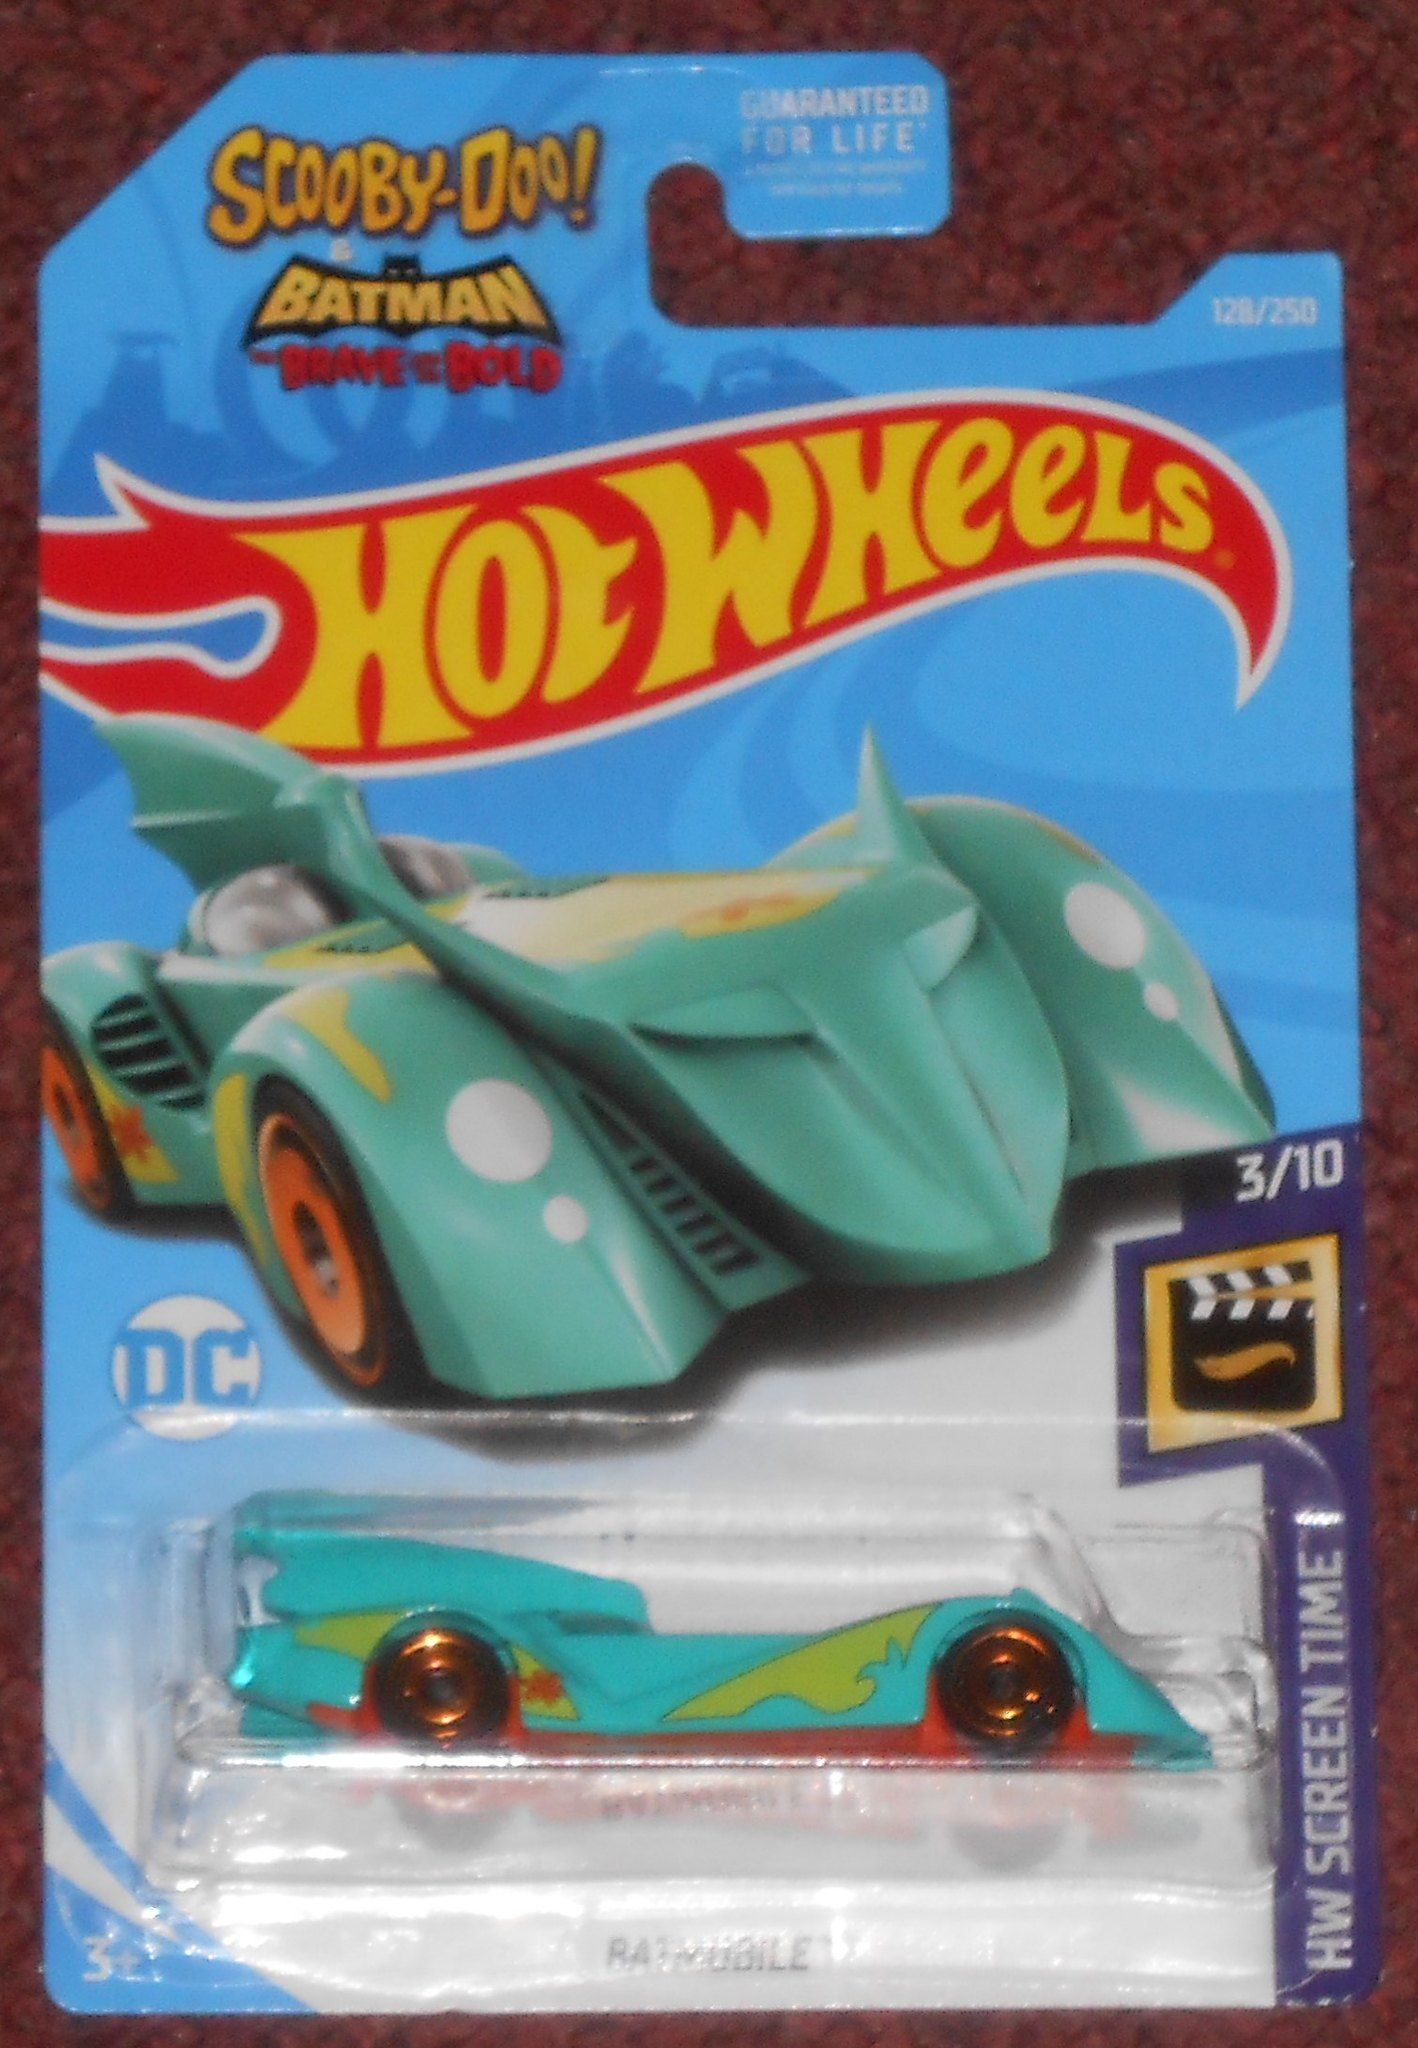 Hot Wheels Scooby Doo Batman With Images Scooby Hot